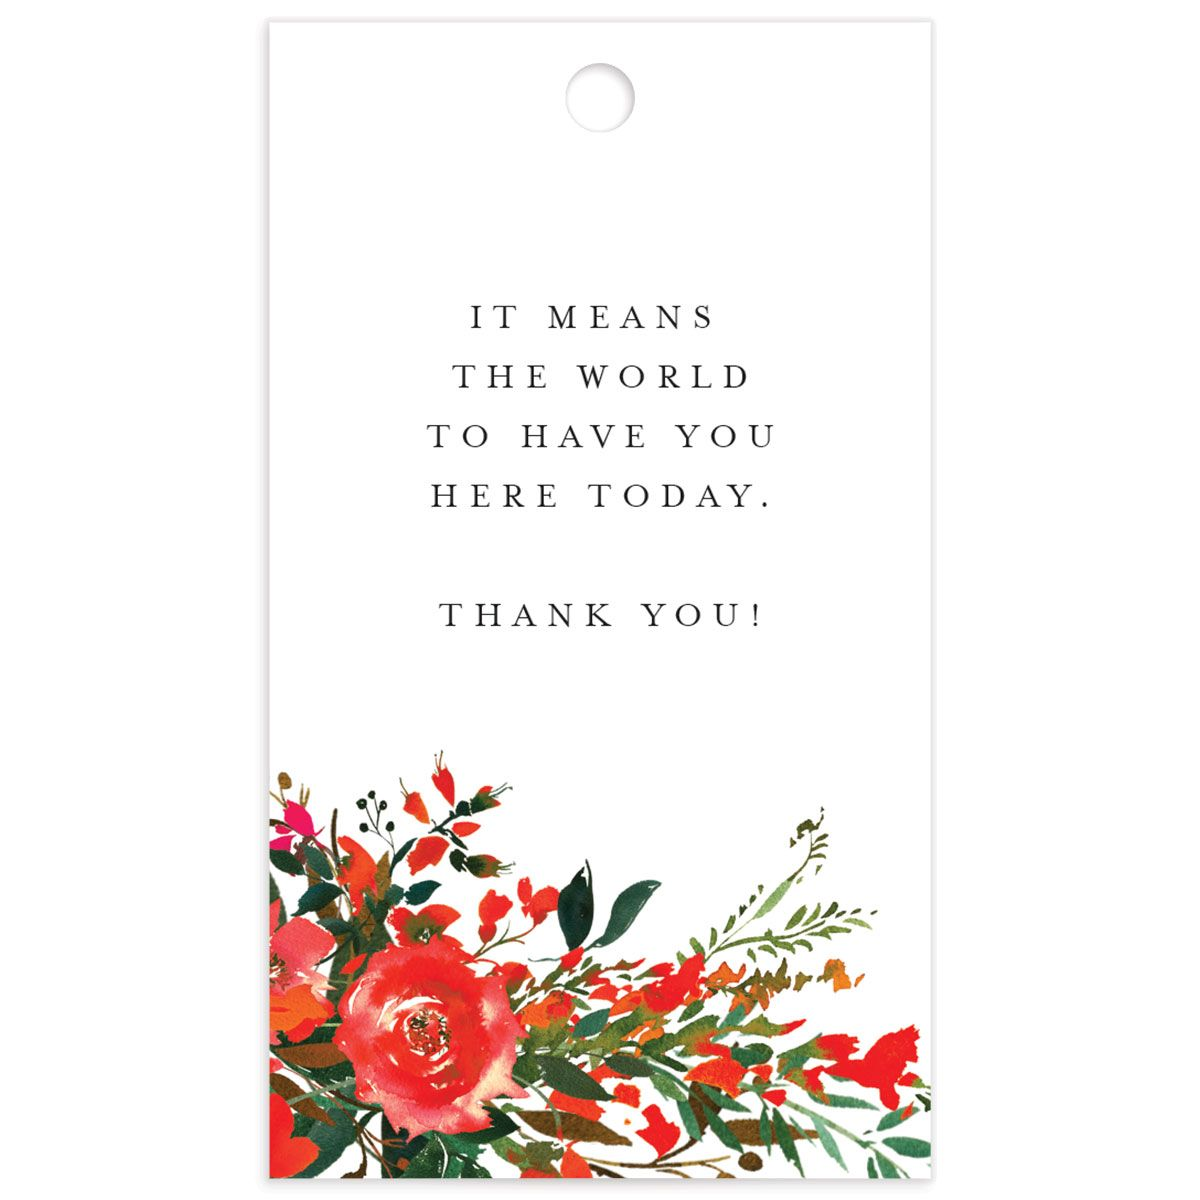 Cascading Altar wedding gift tags in bright red front